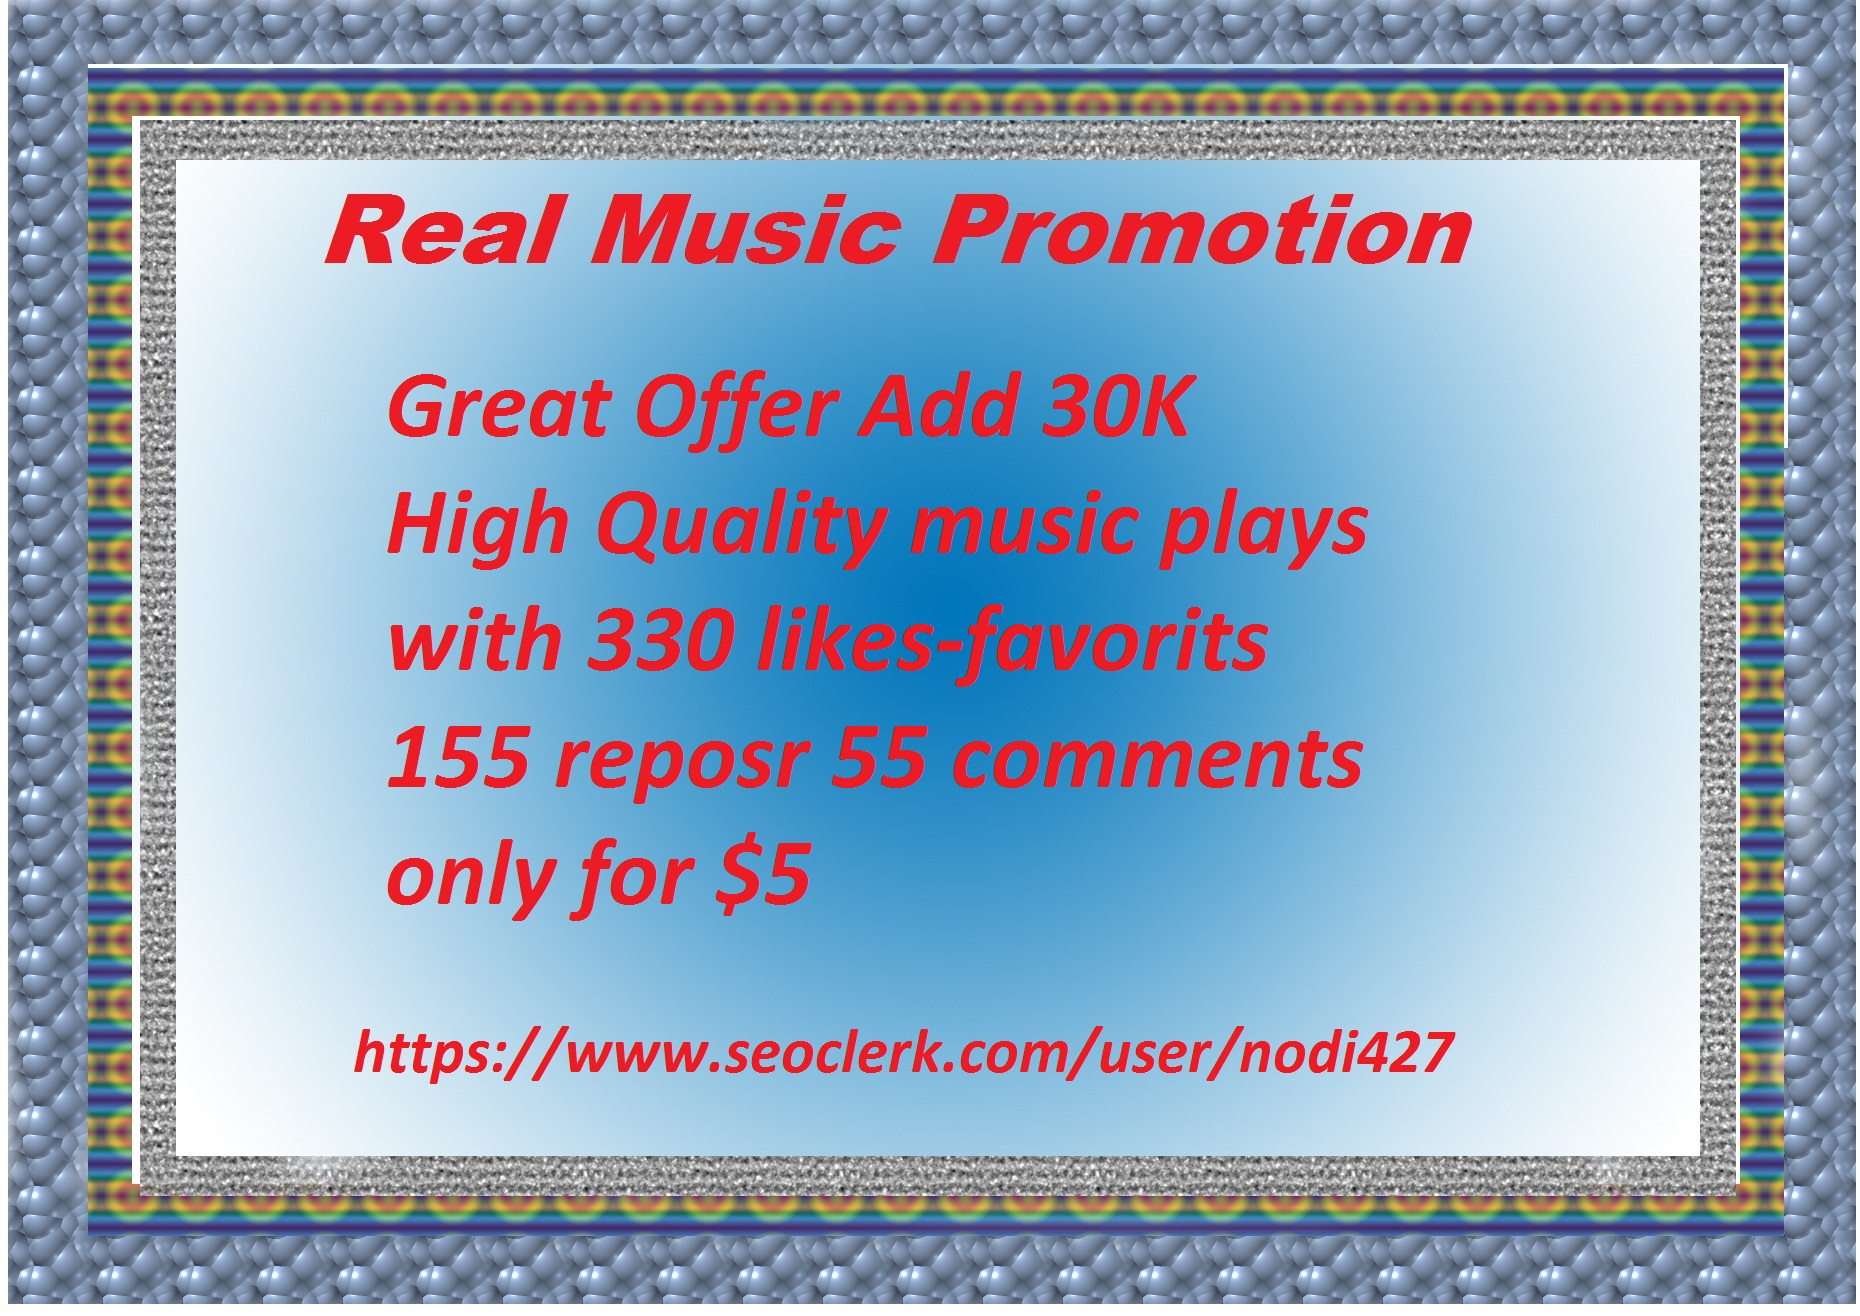 Music promotion 30 K High Quality music play with 330 likes-favorites 155 repost 55 comments